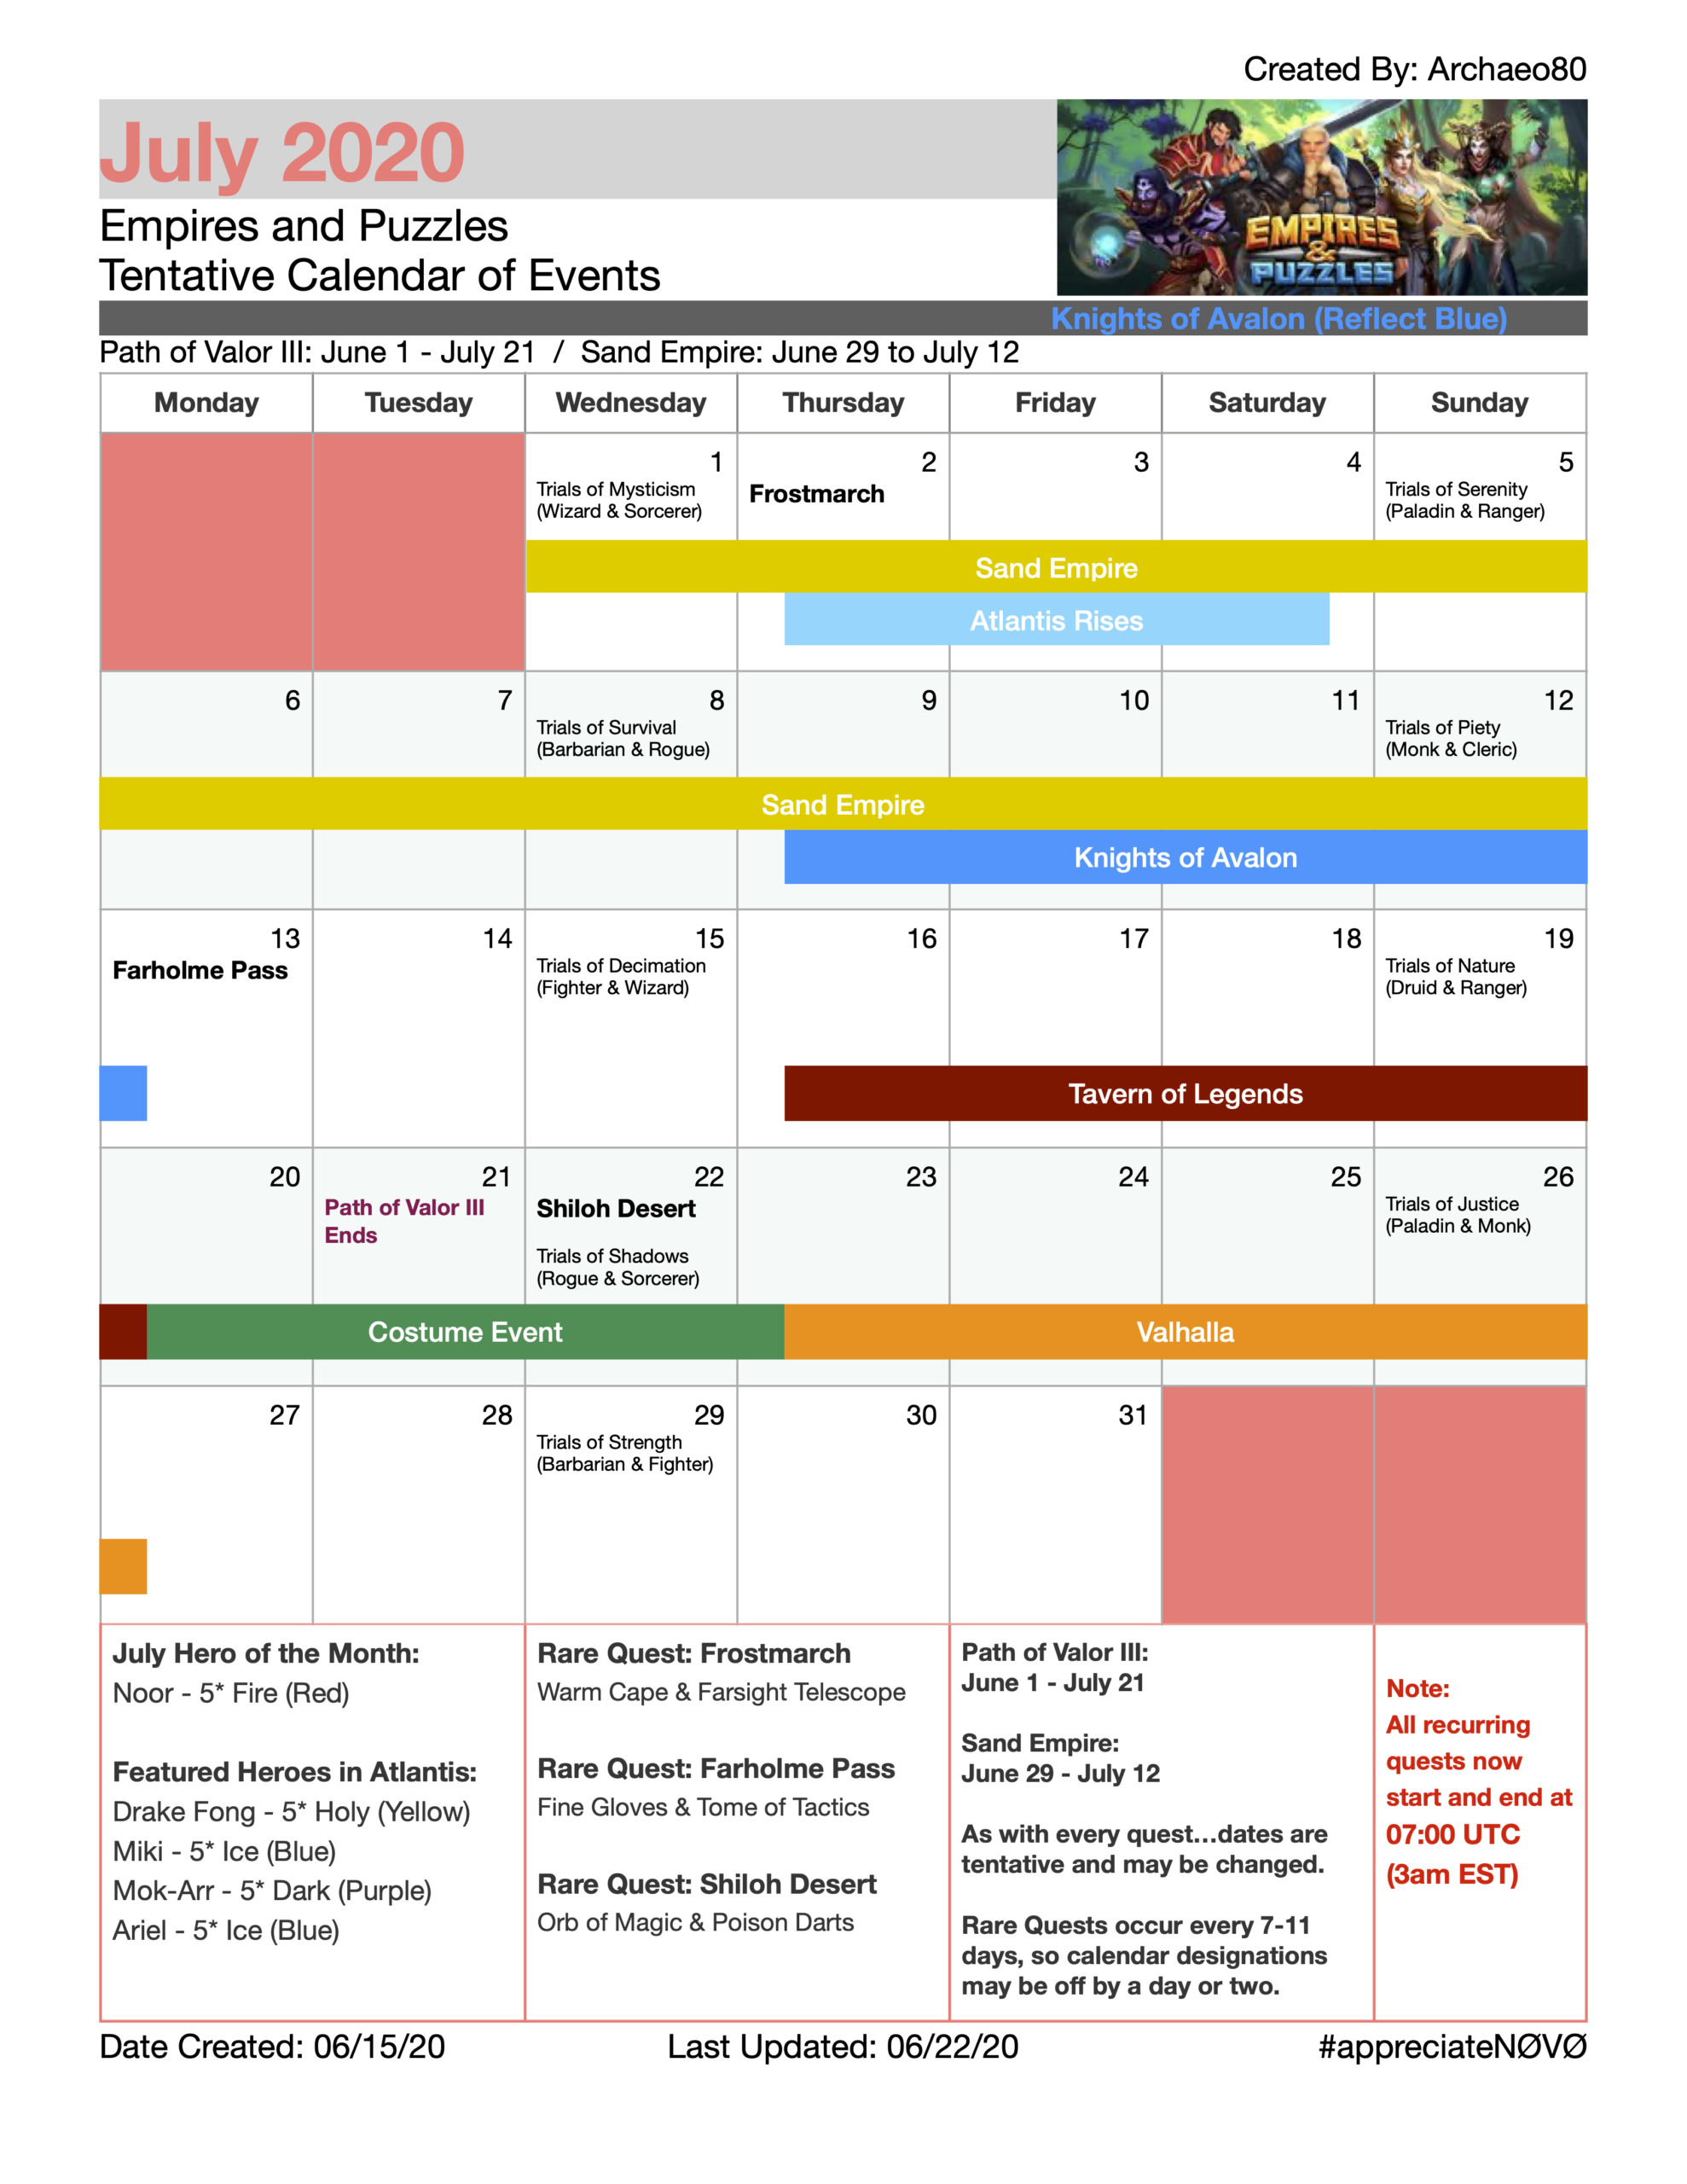 July 2020 Event And Quest Calendar For Empires & Puzzles in Empires And Puzzles Events Calendar 2021